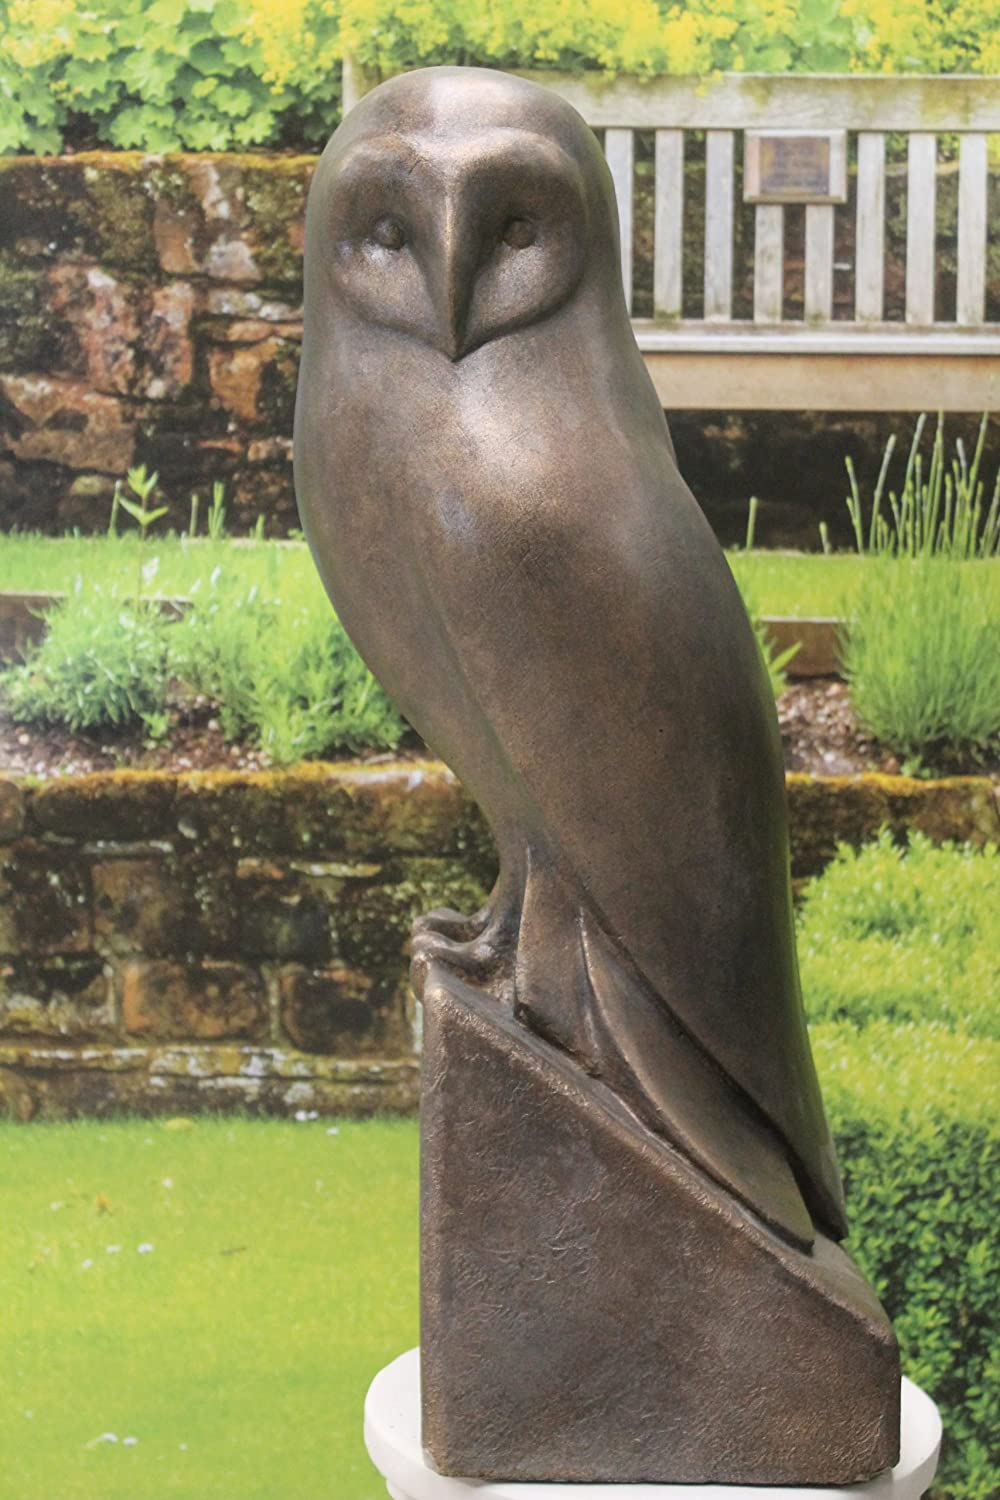 Ornate stone large owl statue and plinth garden ornament Amazon